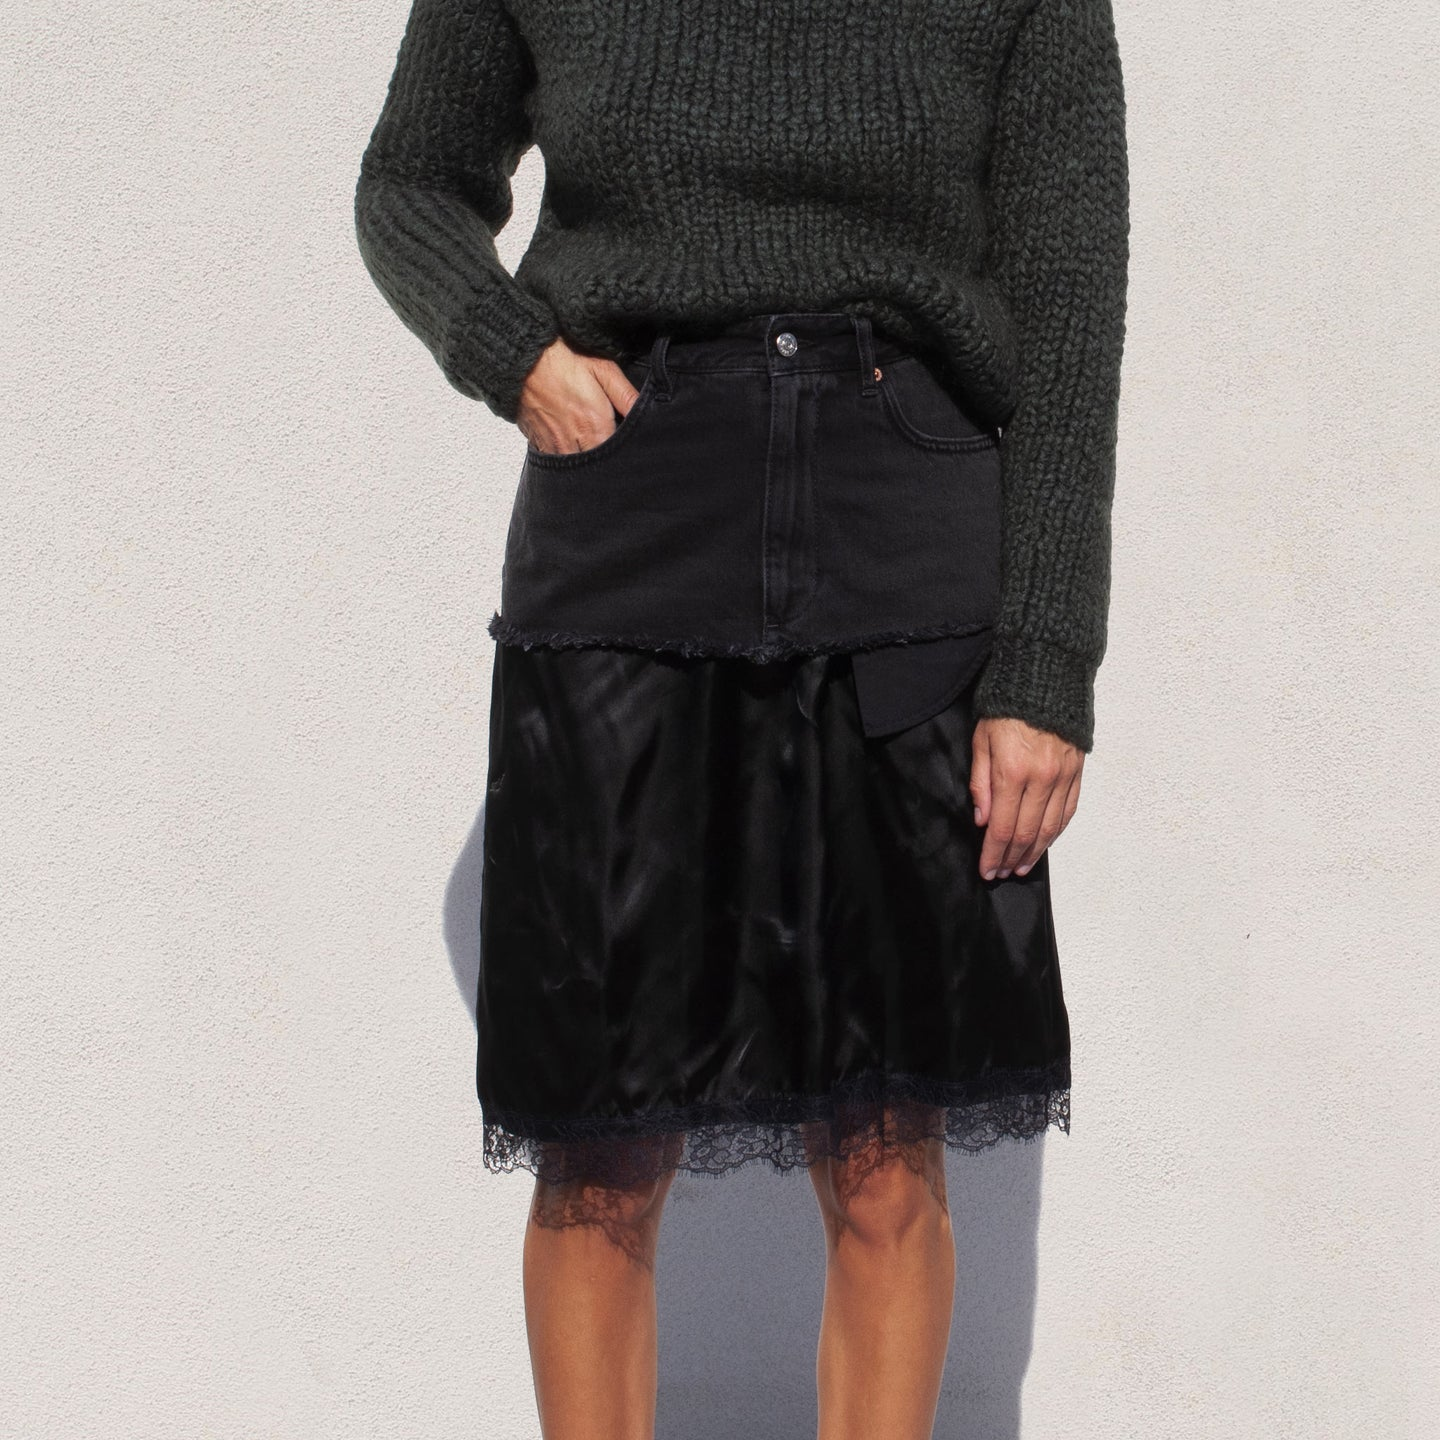 MM6 - Denim Slip Skirt, front view, available at LCD.